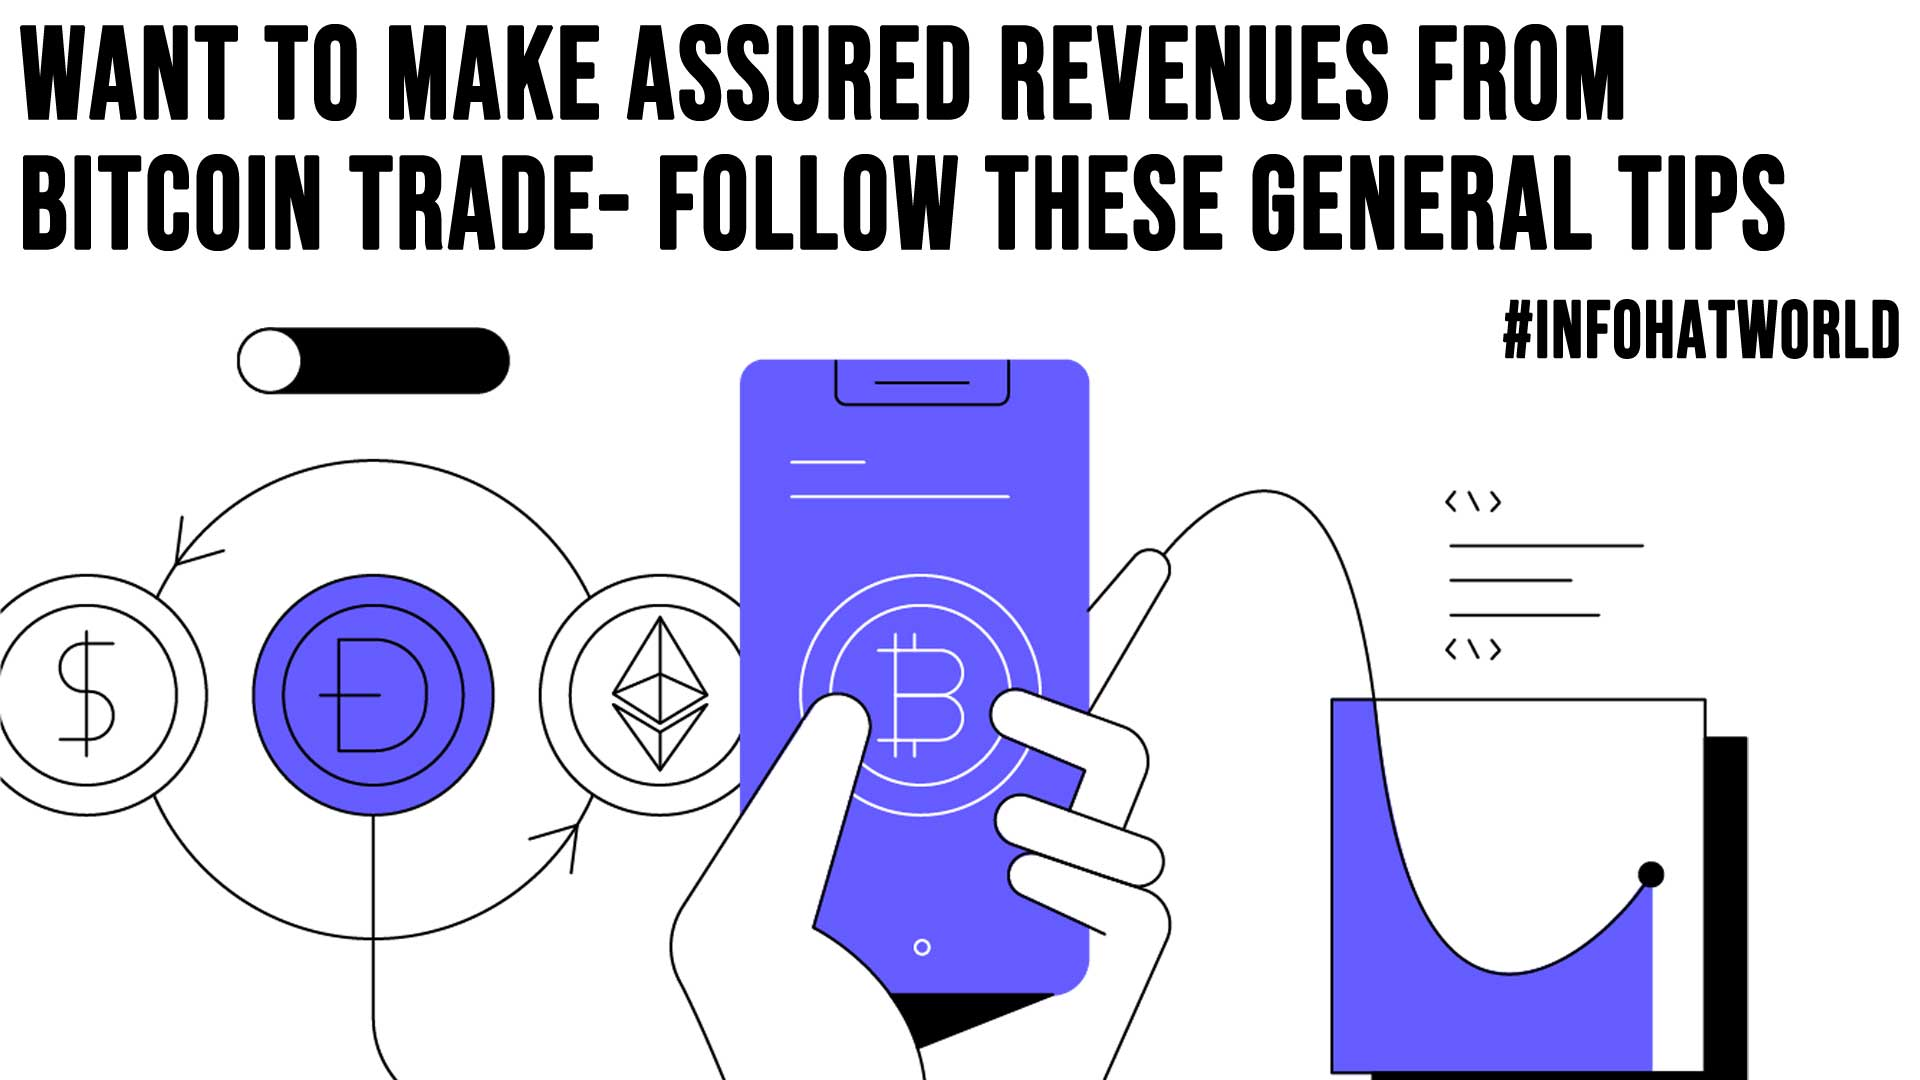 Want to Make Assured Revenues from Bitcoin Trade Follow These General Tips